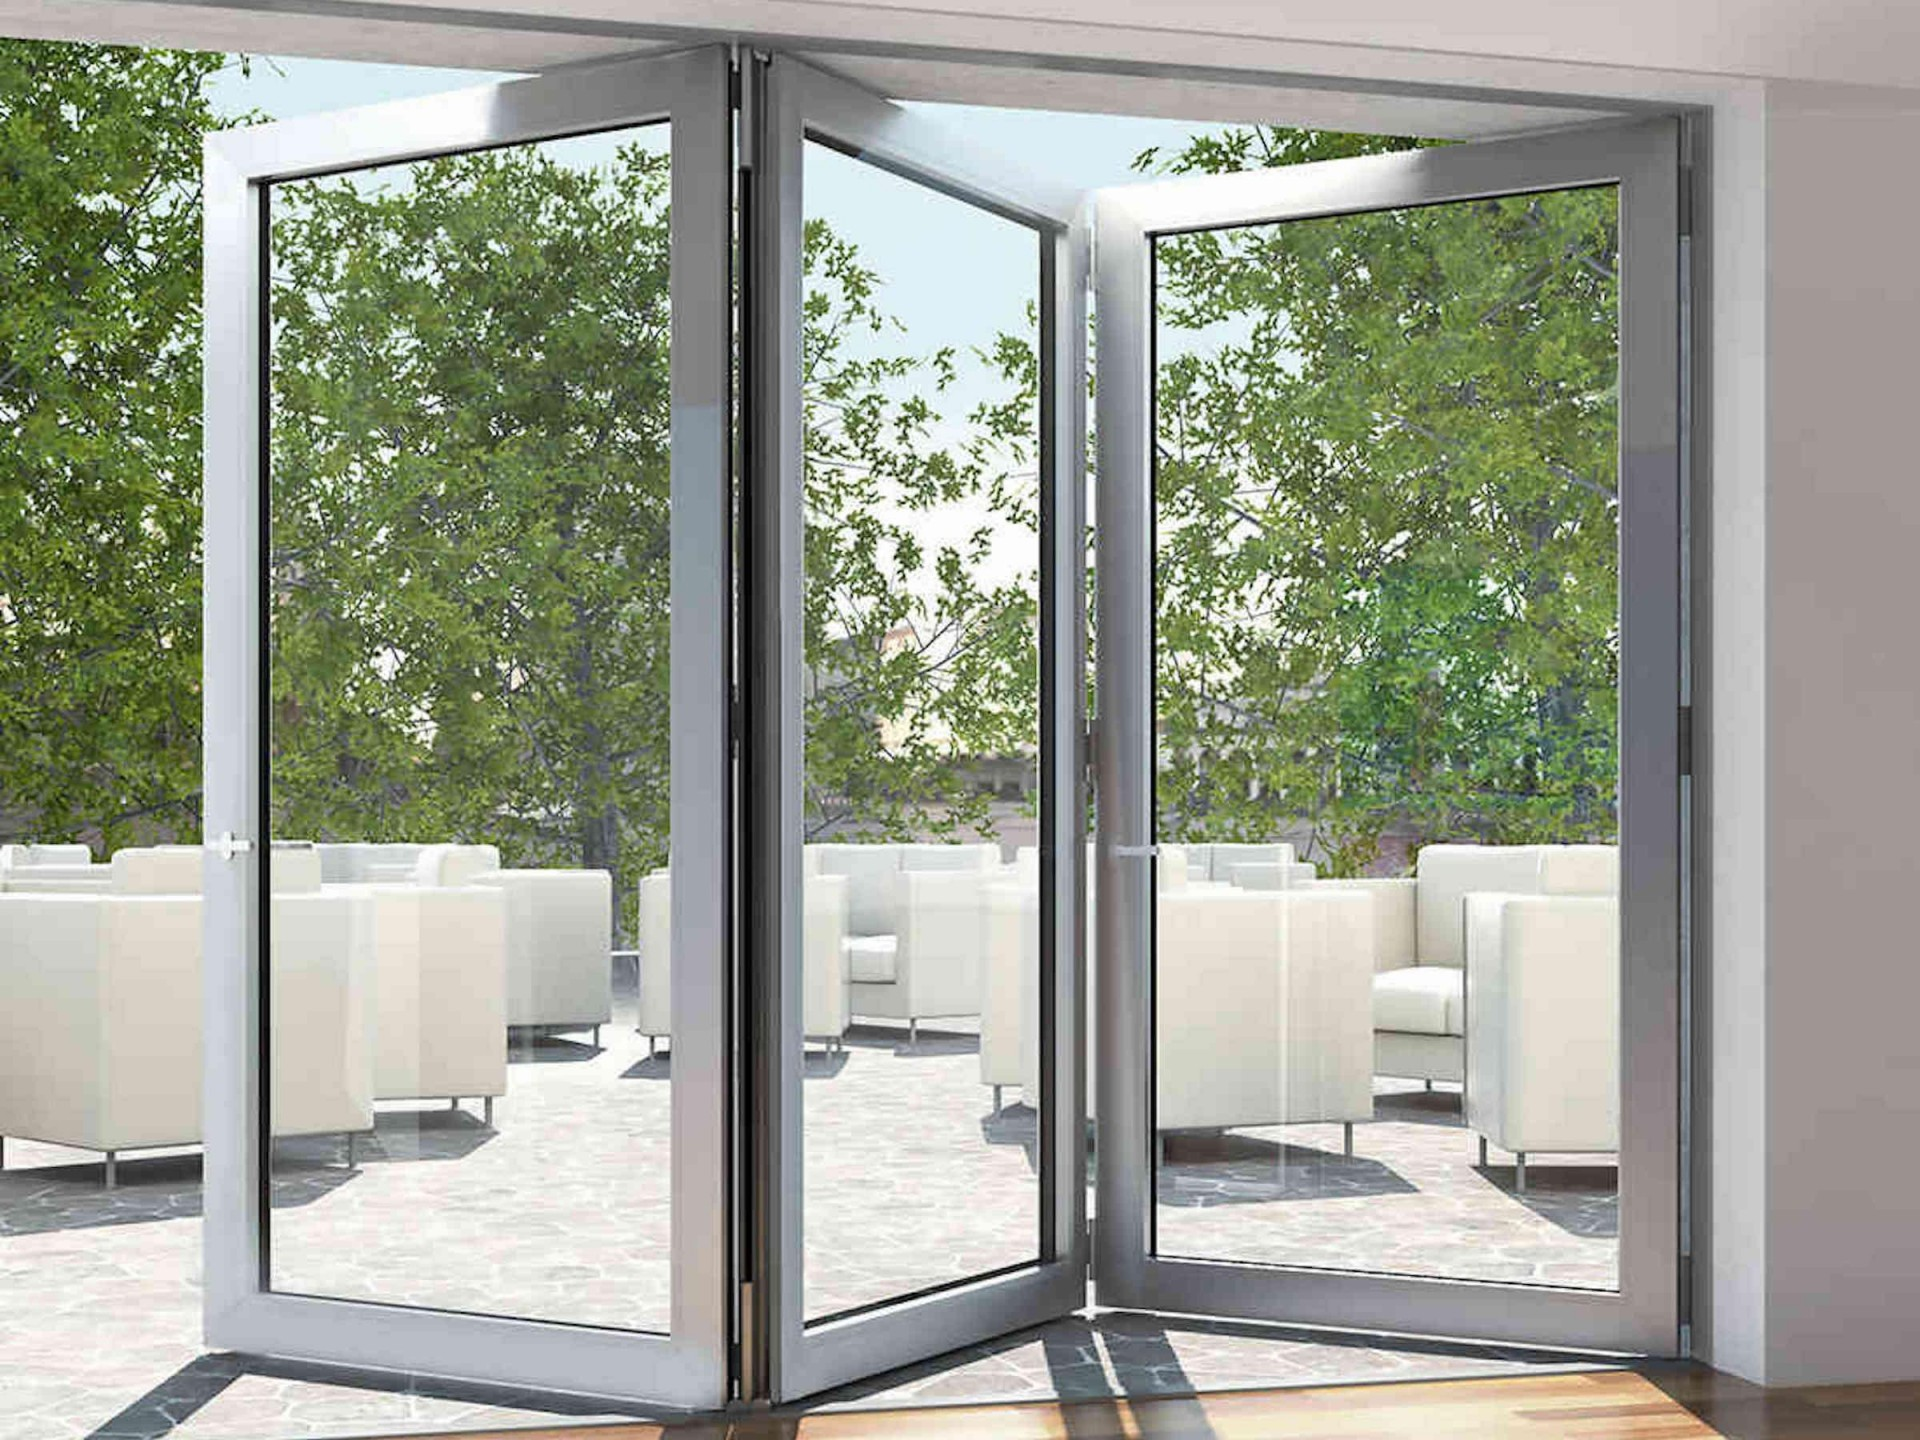 Aluminium Window and Door Manufacturer for sale in Sydney South